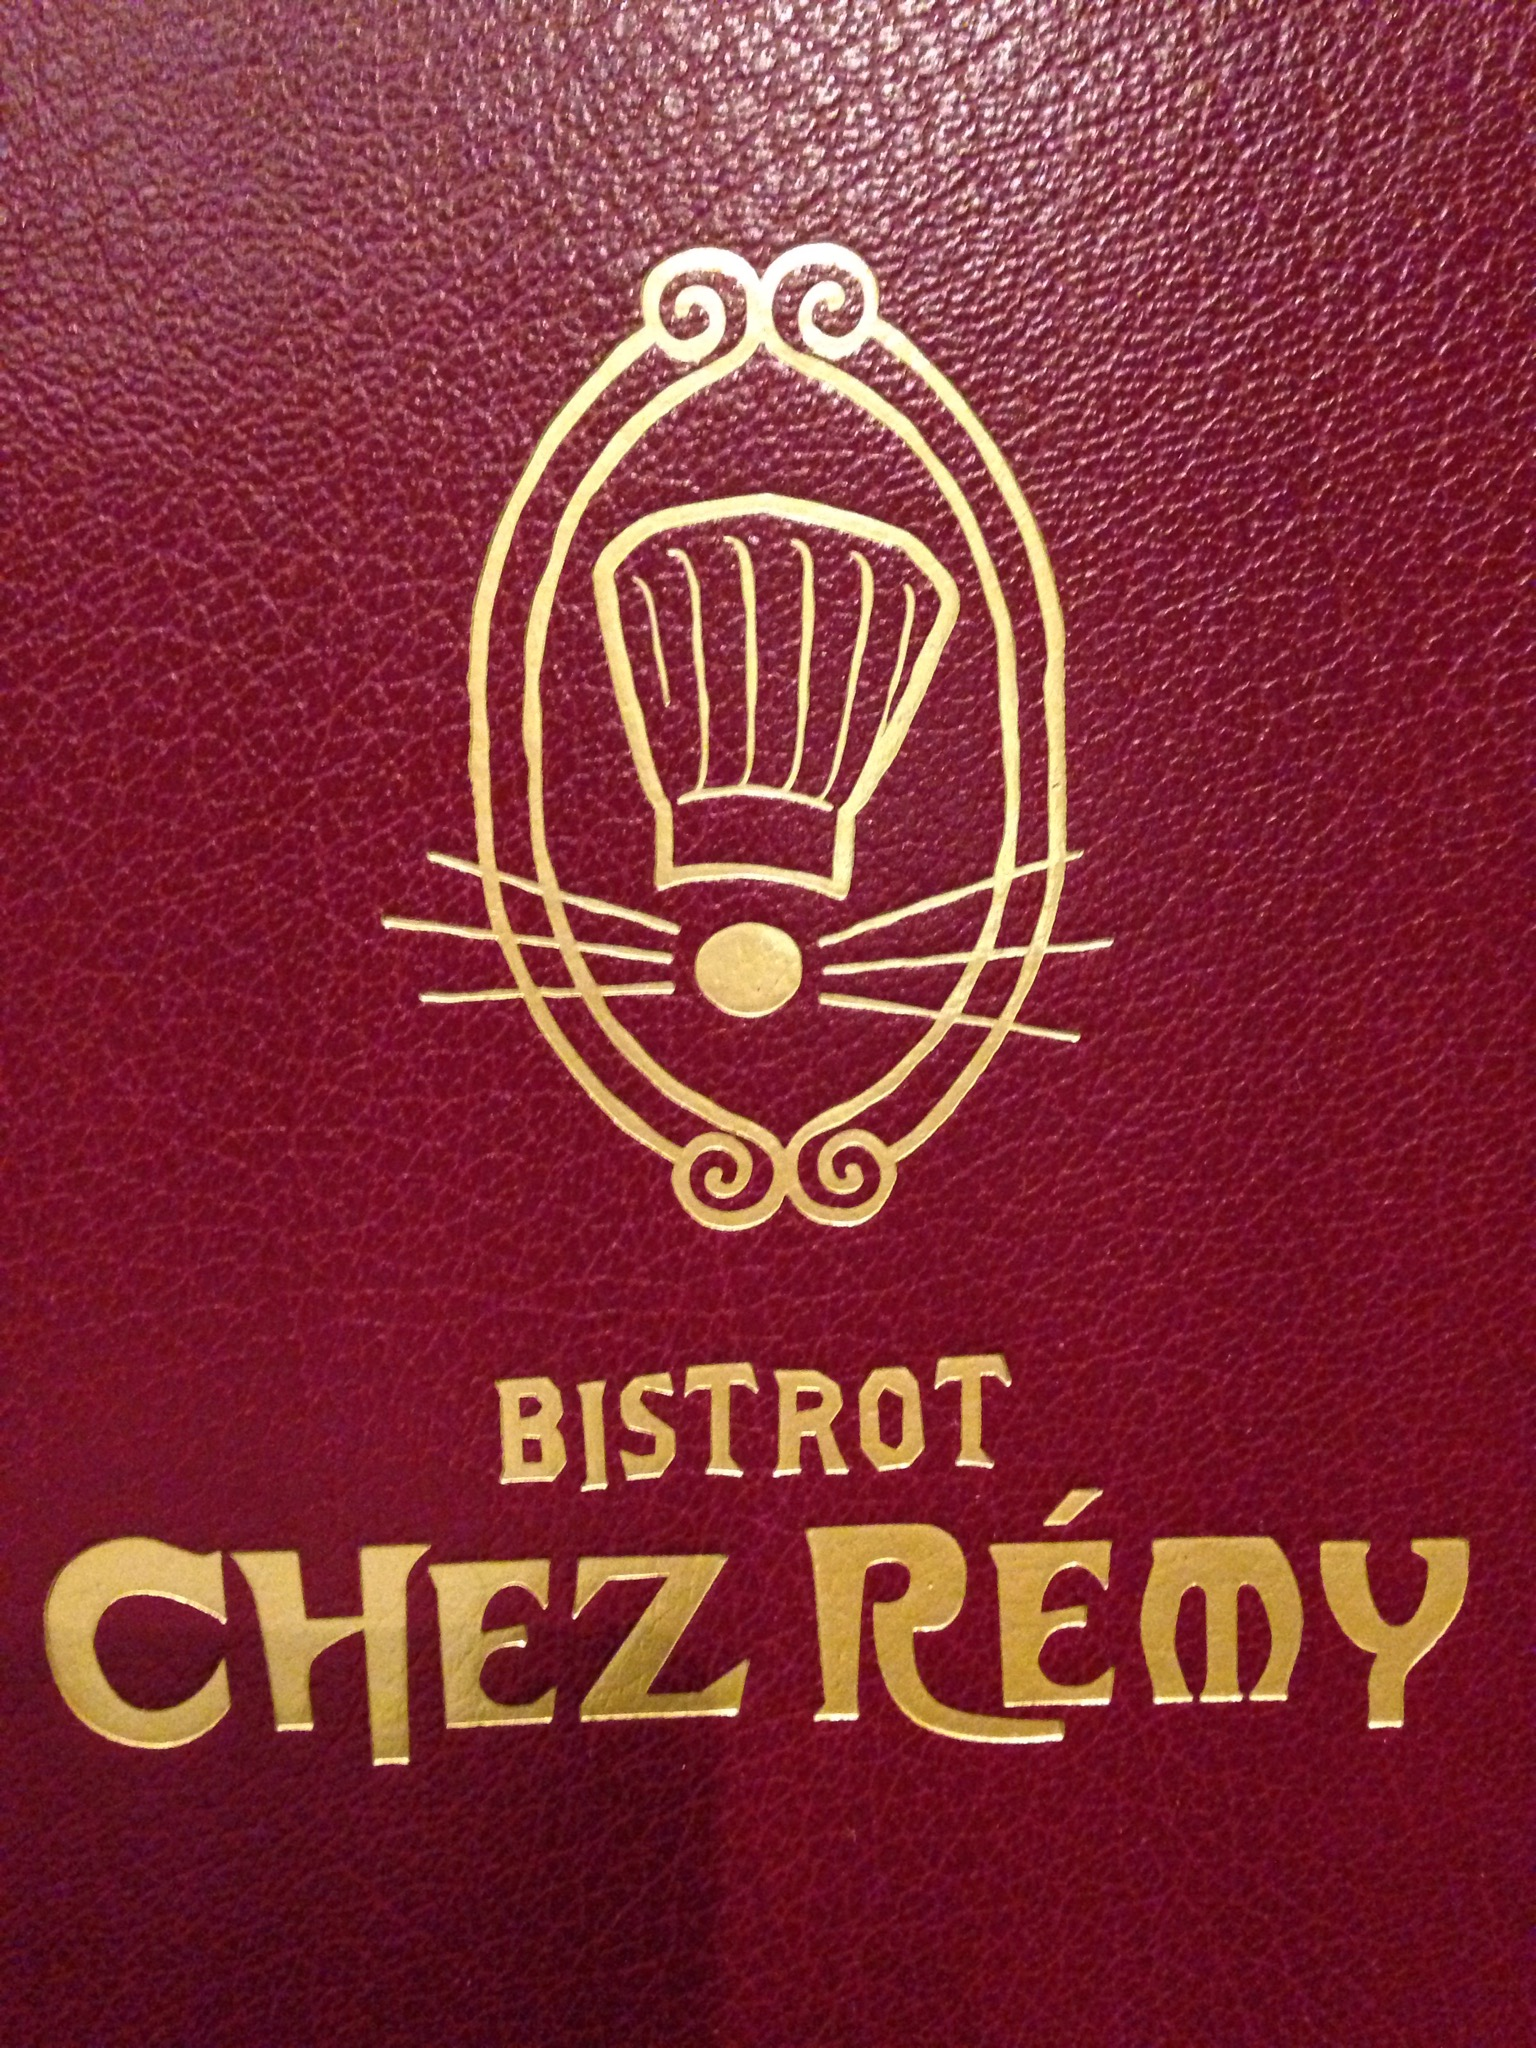 REVIEW: Bistrot chez Remy